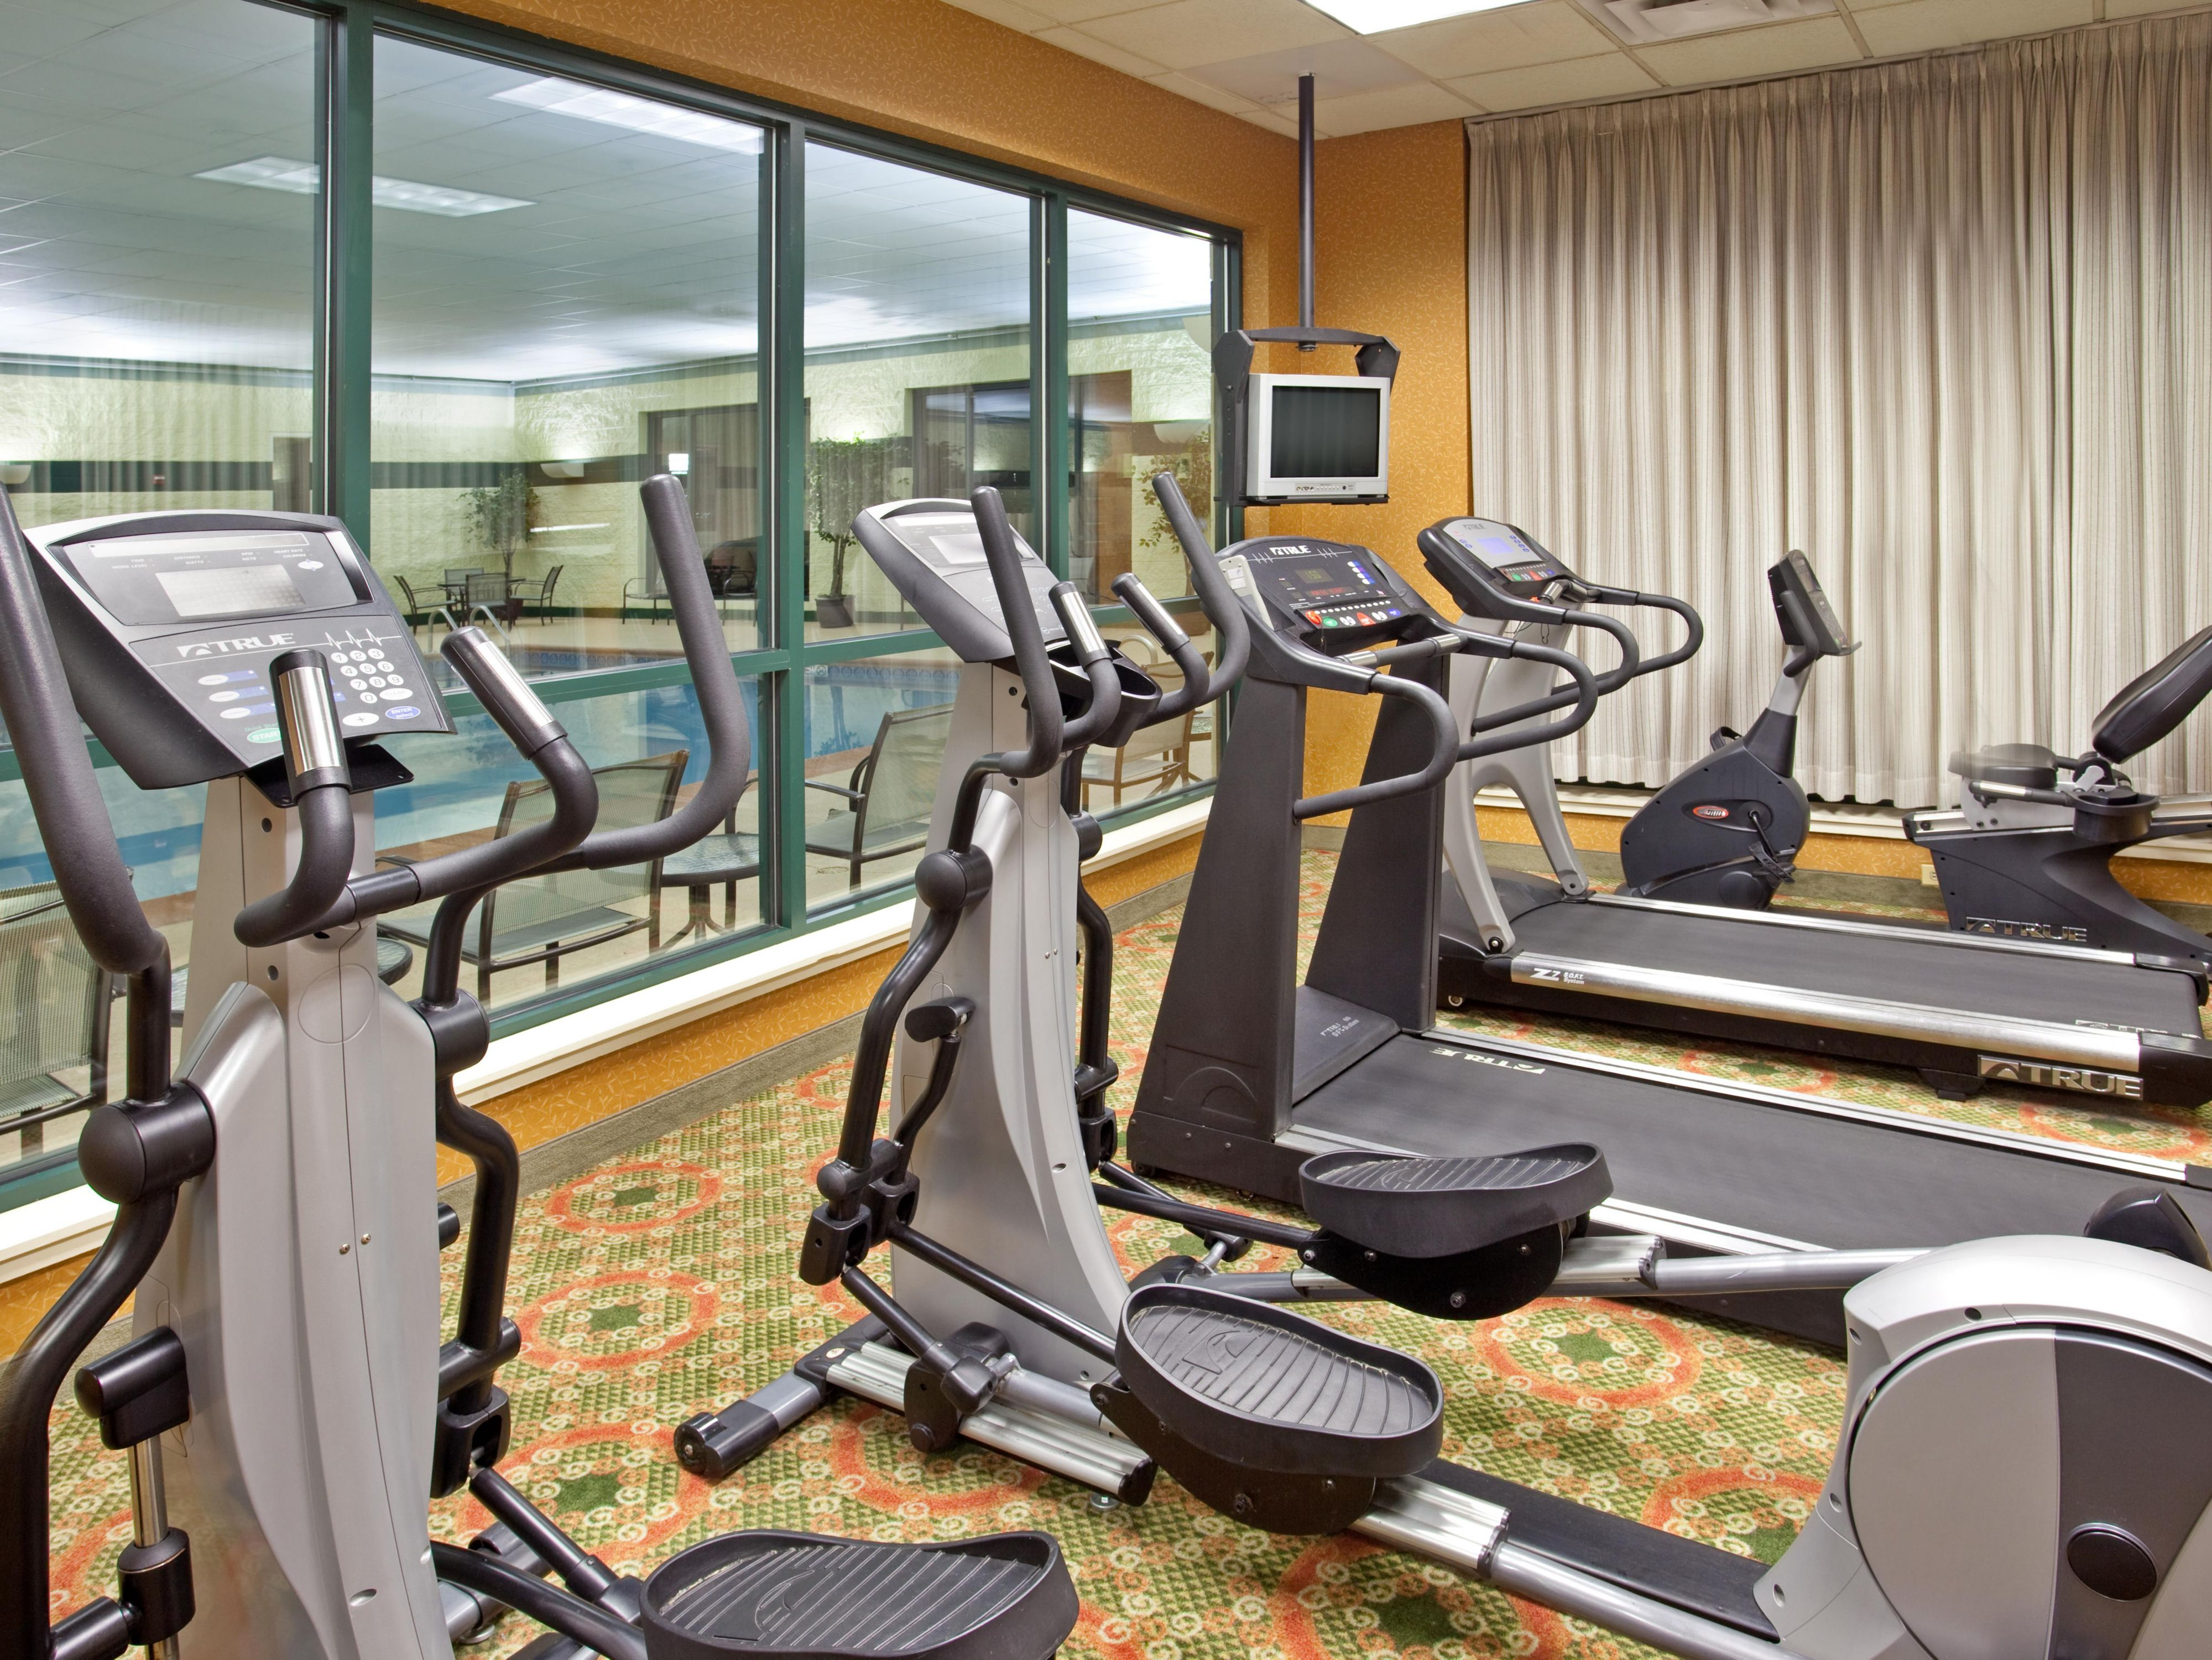 Hotel Fitness Center complimentary for guests at Holiday Inn Hotel